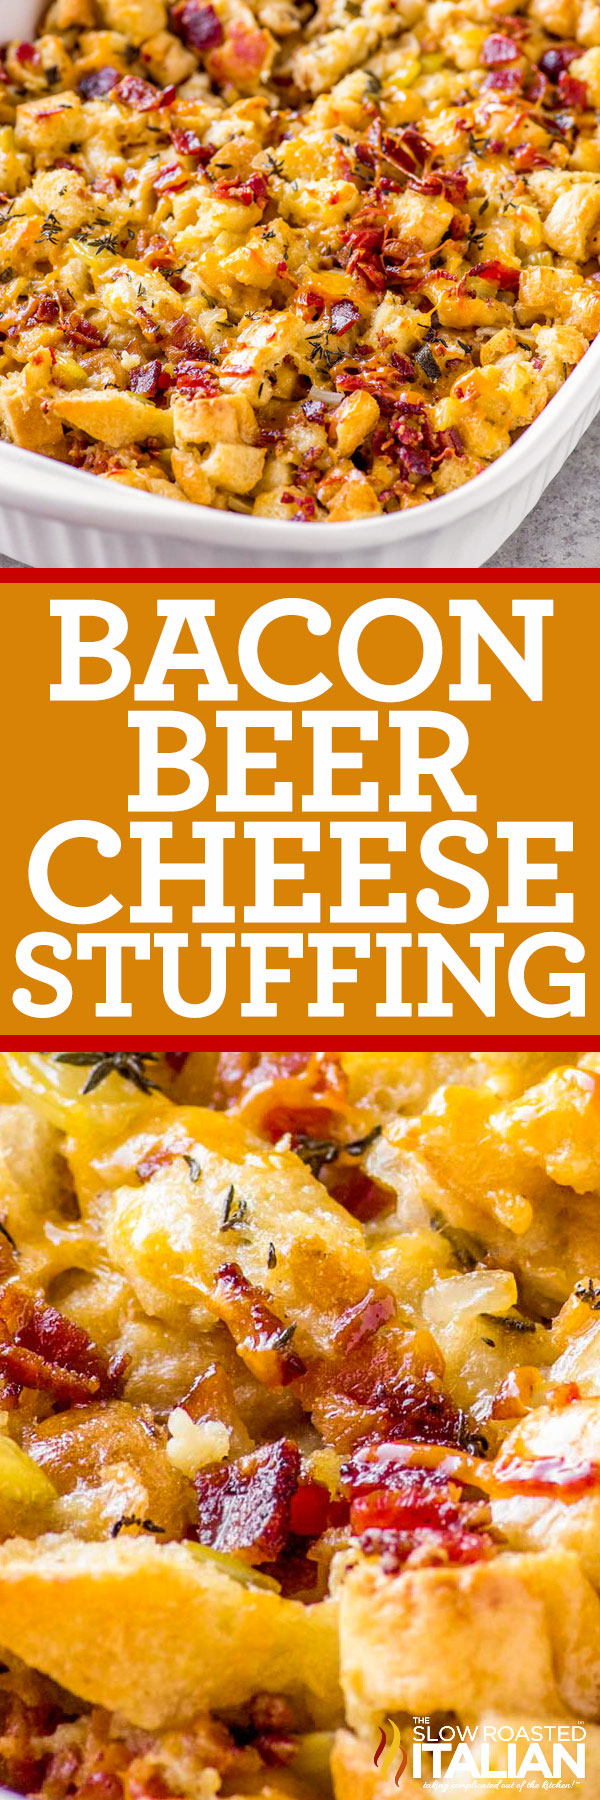 titled image for Pinterest (and shown): Beer Cheese Bacon Stuffing Casserole